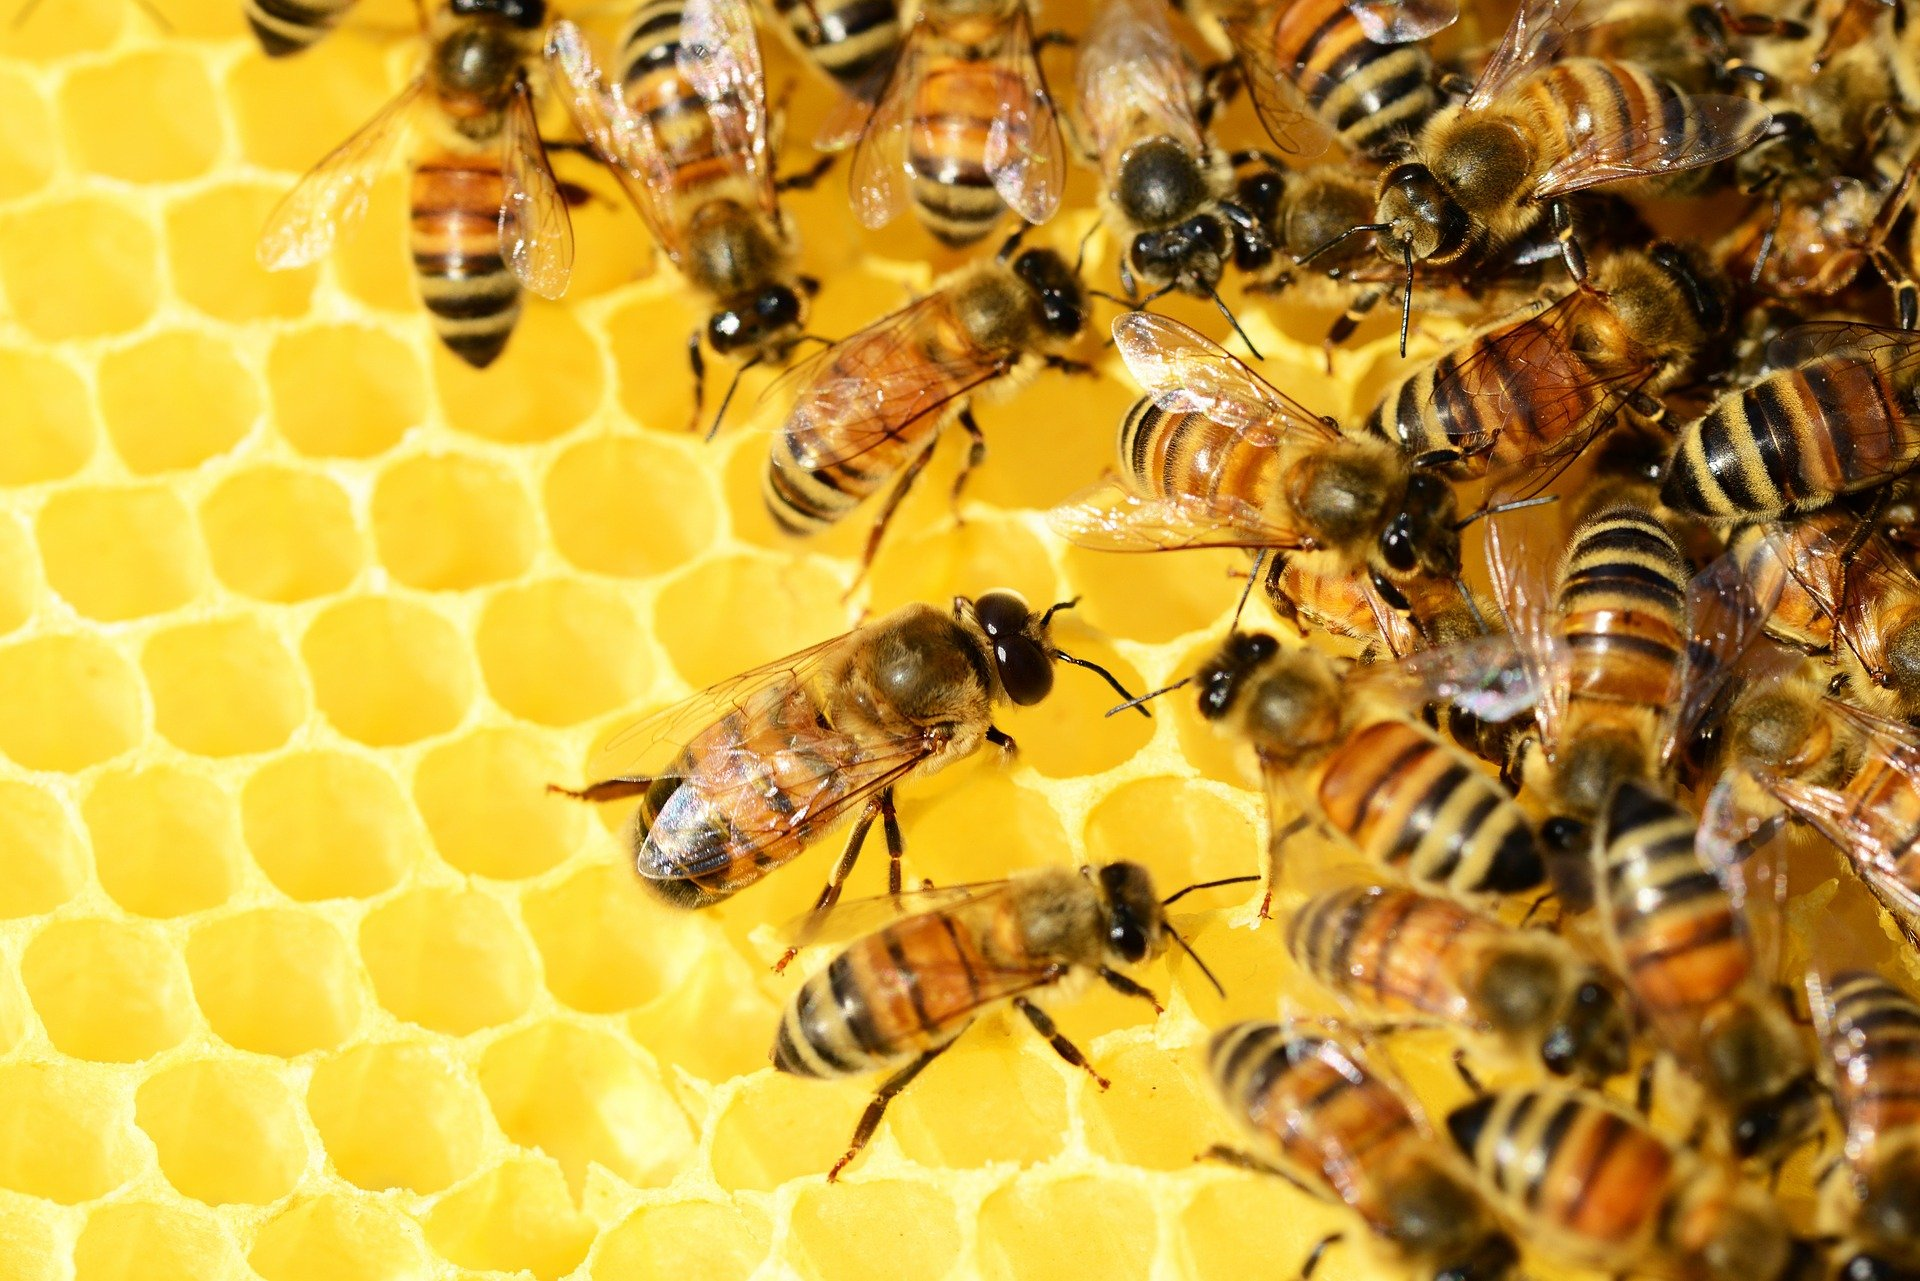 bees-326337_1920